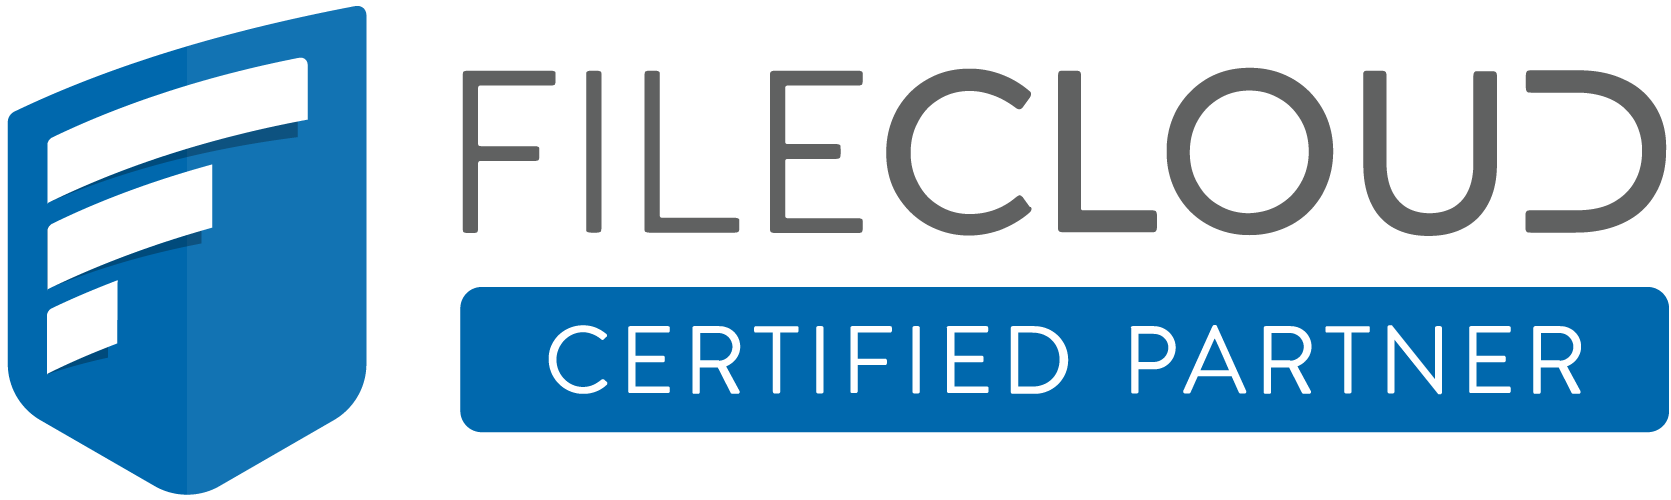 FILECLOUD Certified Partner Logo for Cloud Services for Business